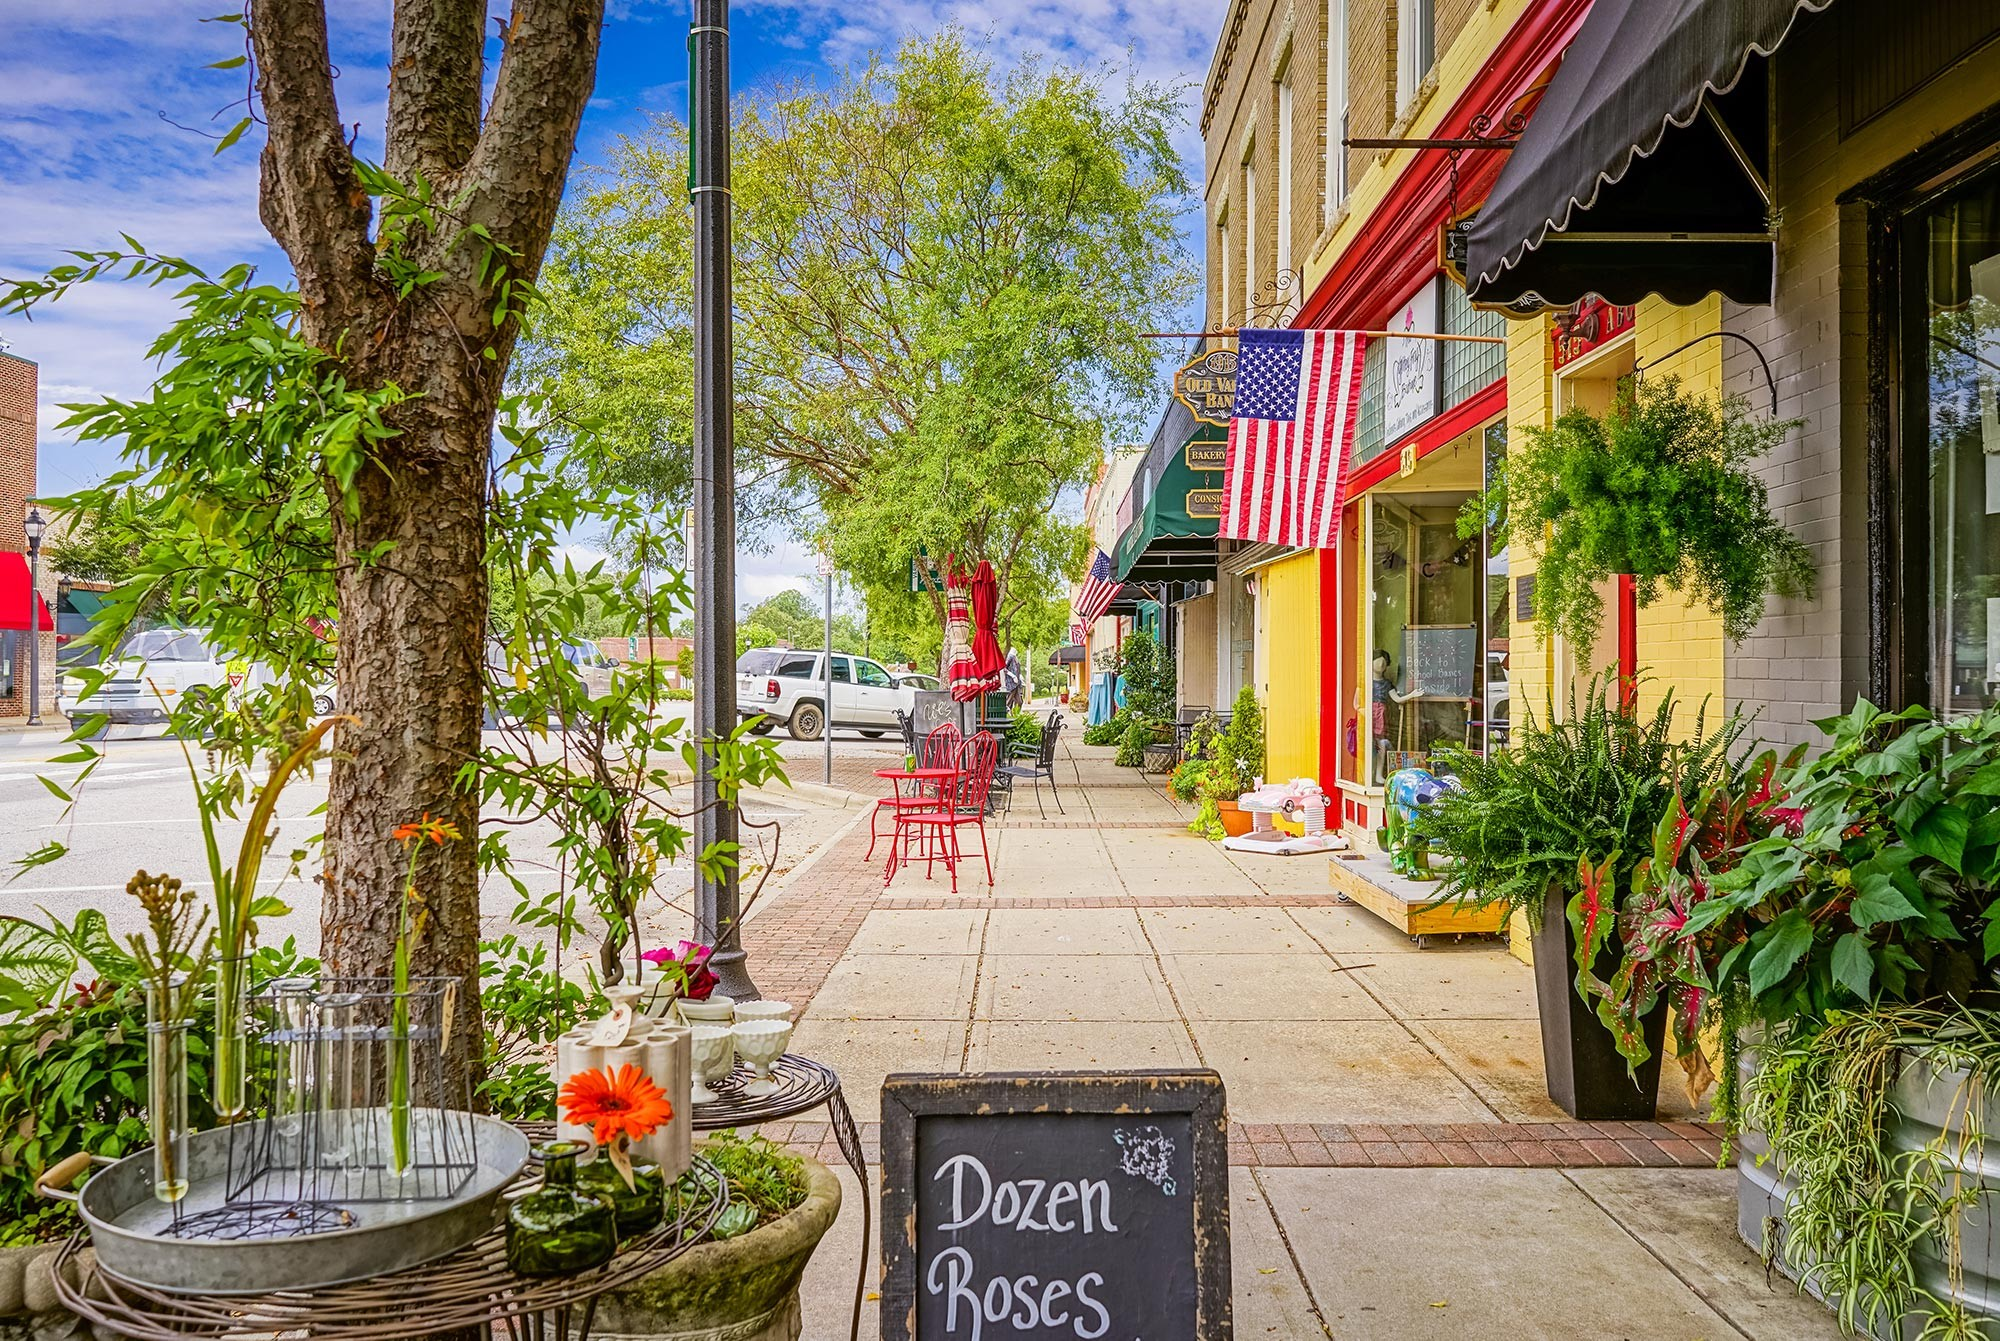 Charming downtown Fuquay-Varina, just miles from Bent Tree